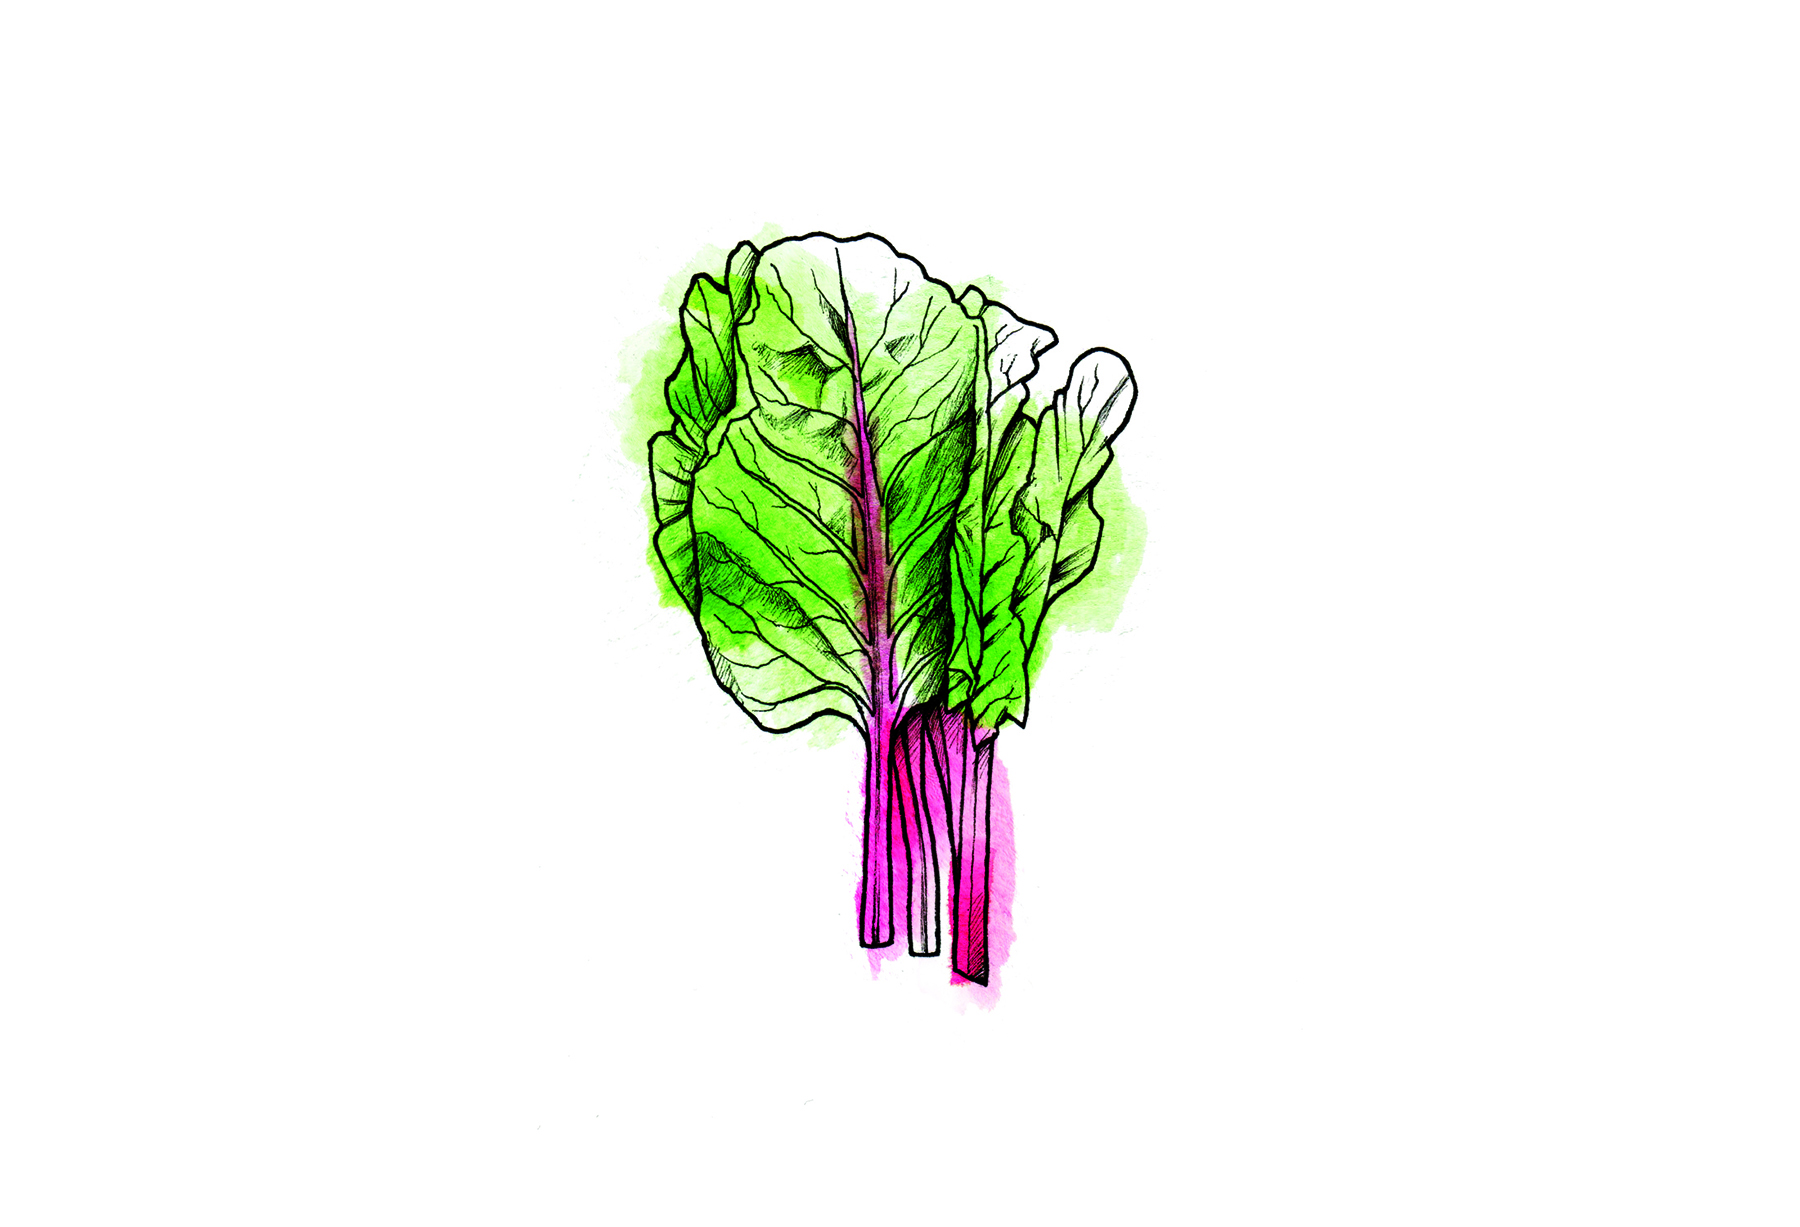 Chard, Kale, or Other Sturdy Greens